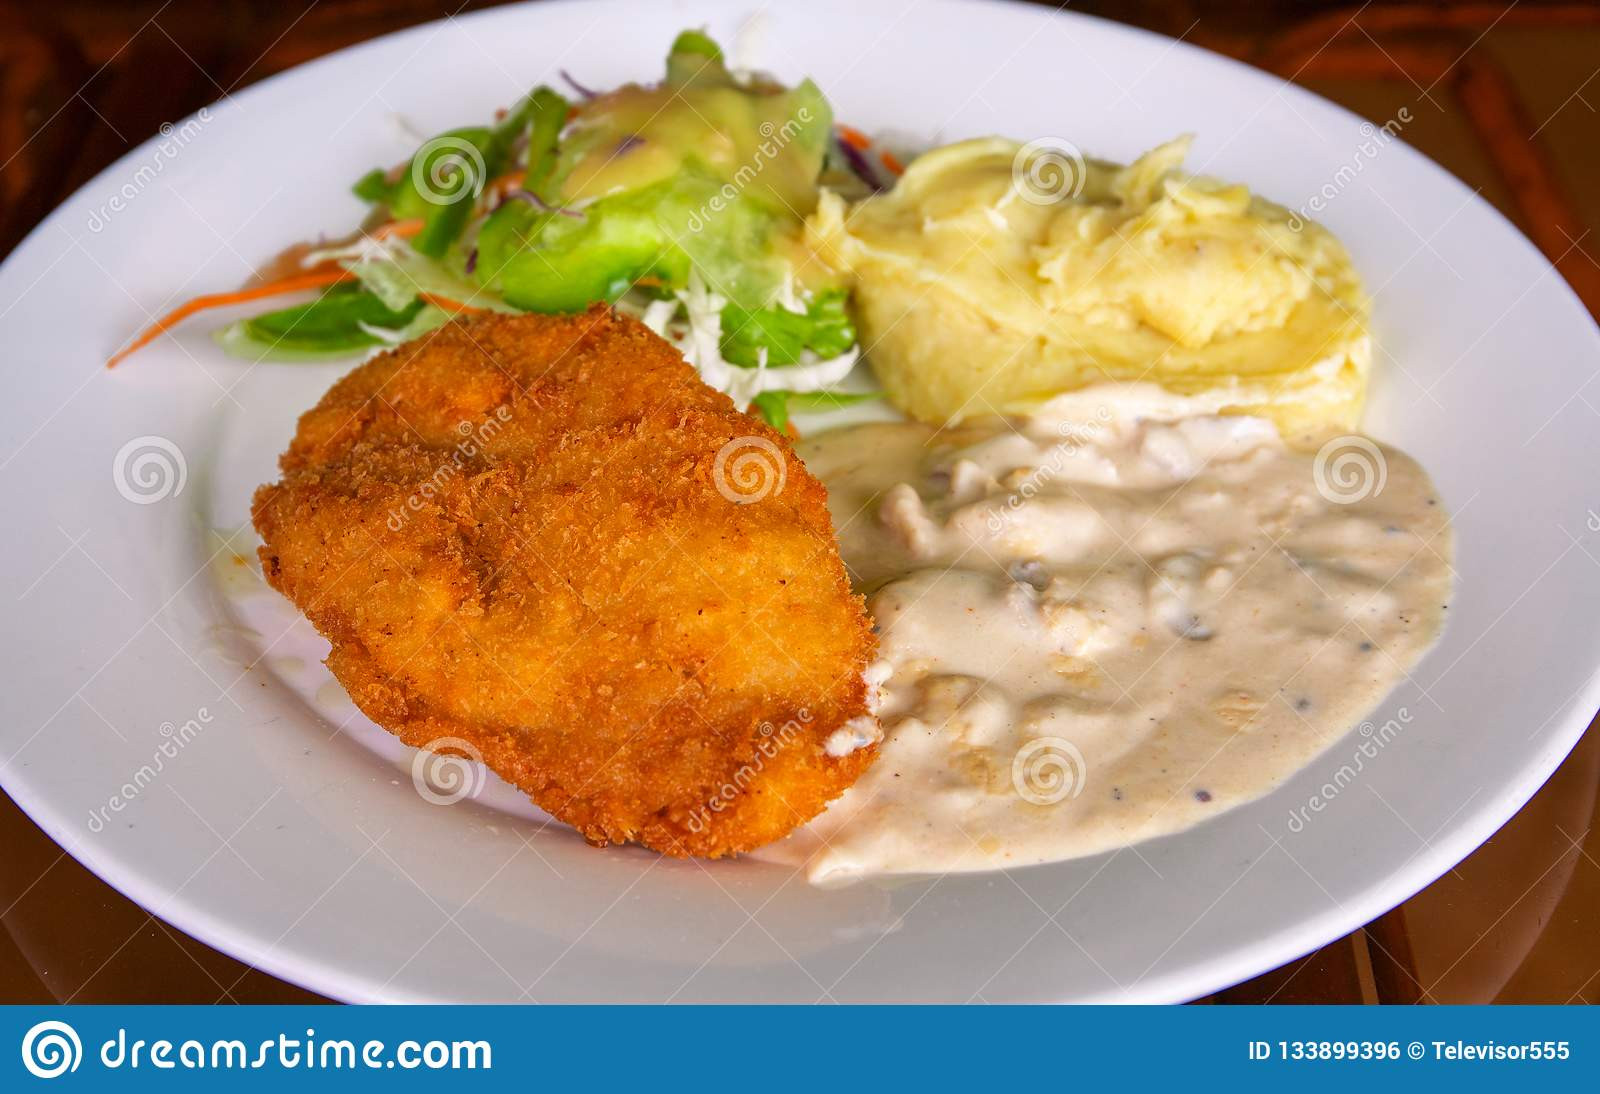 Schnitzel with mashed potato on white plate. Fried chicken cutlet top view photo on wooden table. Tasty lunch served